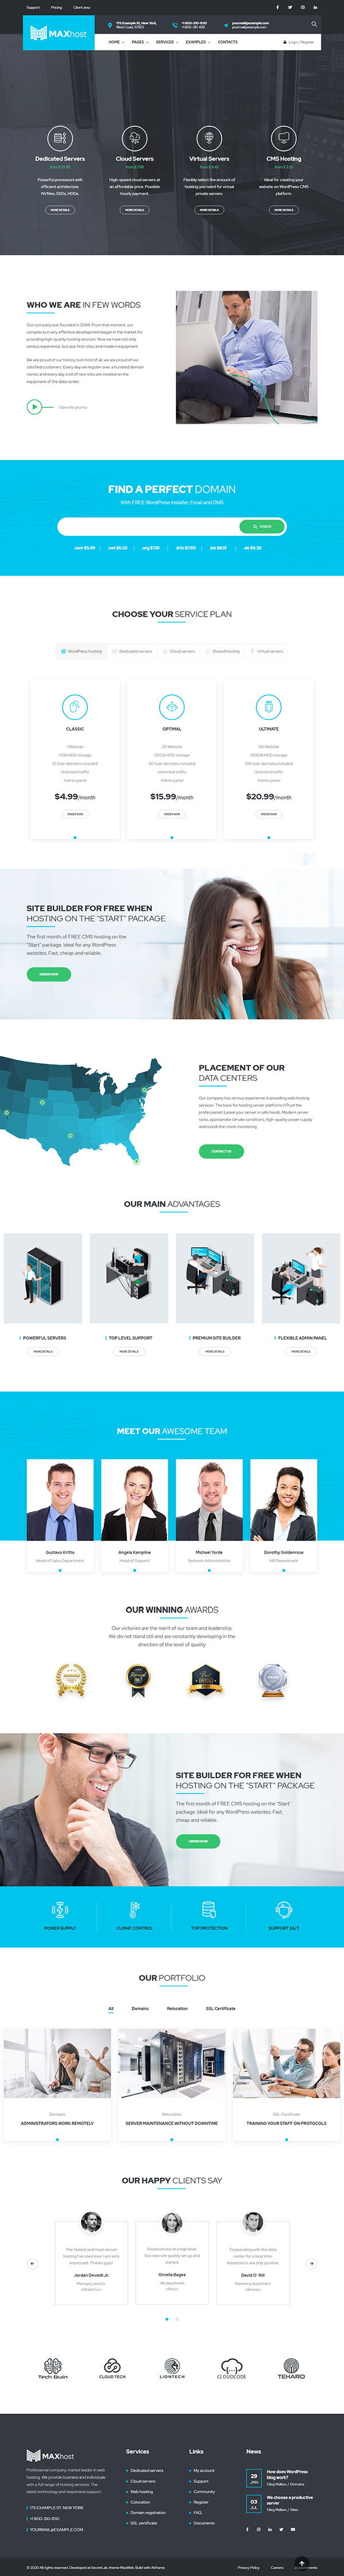 MaxWeb - Hosting & SEO Agency WordPress Theme